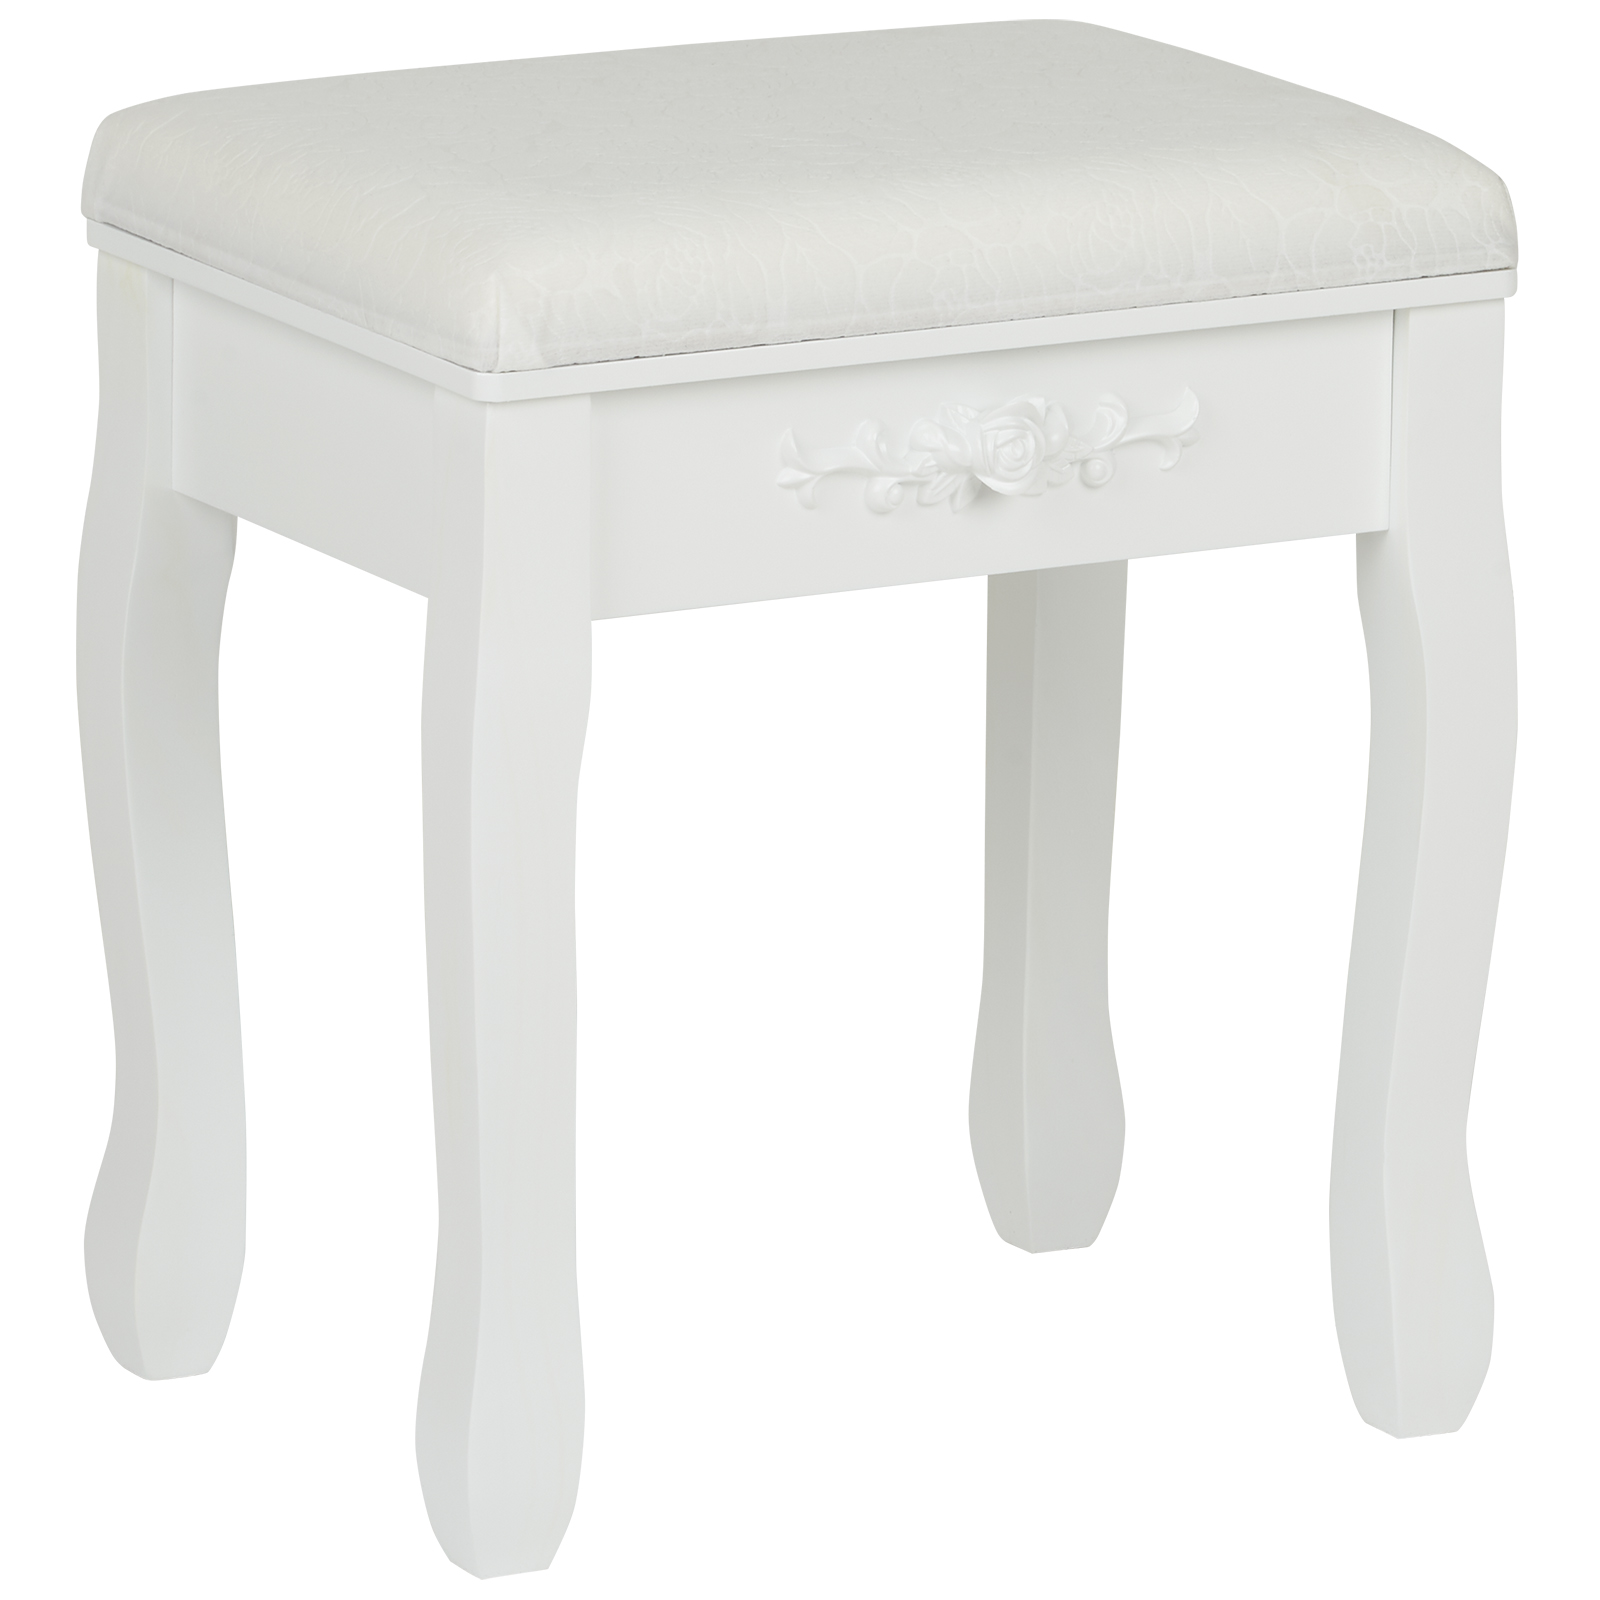 Pleasing Details About Hartleys White Dressing Table Stool Soft Padded Chair Makeup Vanity Bedroom Seat Squirreltailoven Fun Painted Chair Ideas Images Squirreltailovenorg